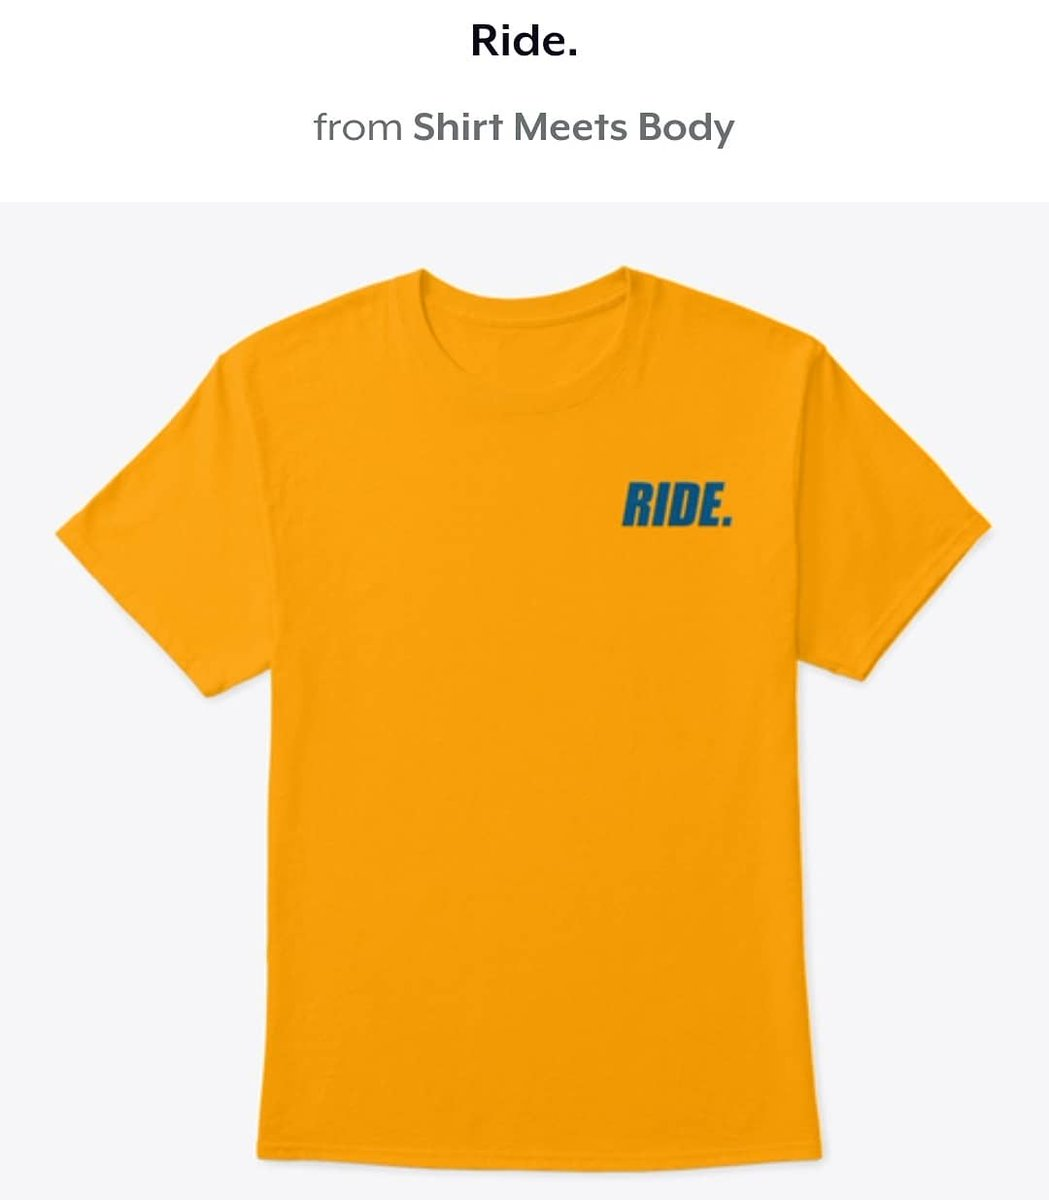 Loud & proud #SummerVibes with these dope shirts from https://teespring.com/ride-the-waves-of-life… Available w #FreeShipping & several #colorways Order yours now!! #Summer2020 #lockdownextension #schools #schoolfights #StudentLivesMatter #Surf #streetwear #streetstyle #StreetFashion #RideTheWavespic.twitter.com/kz1tg6UgcD